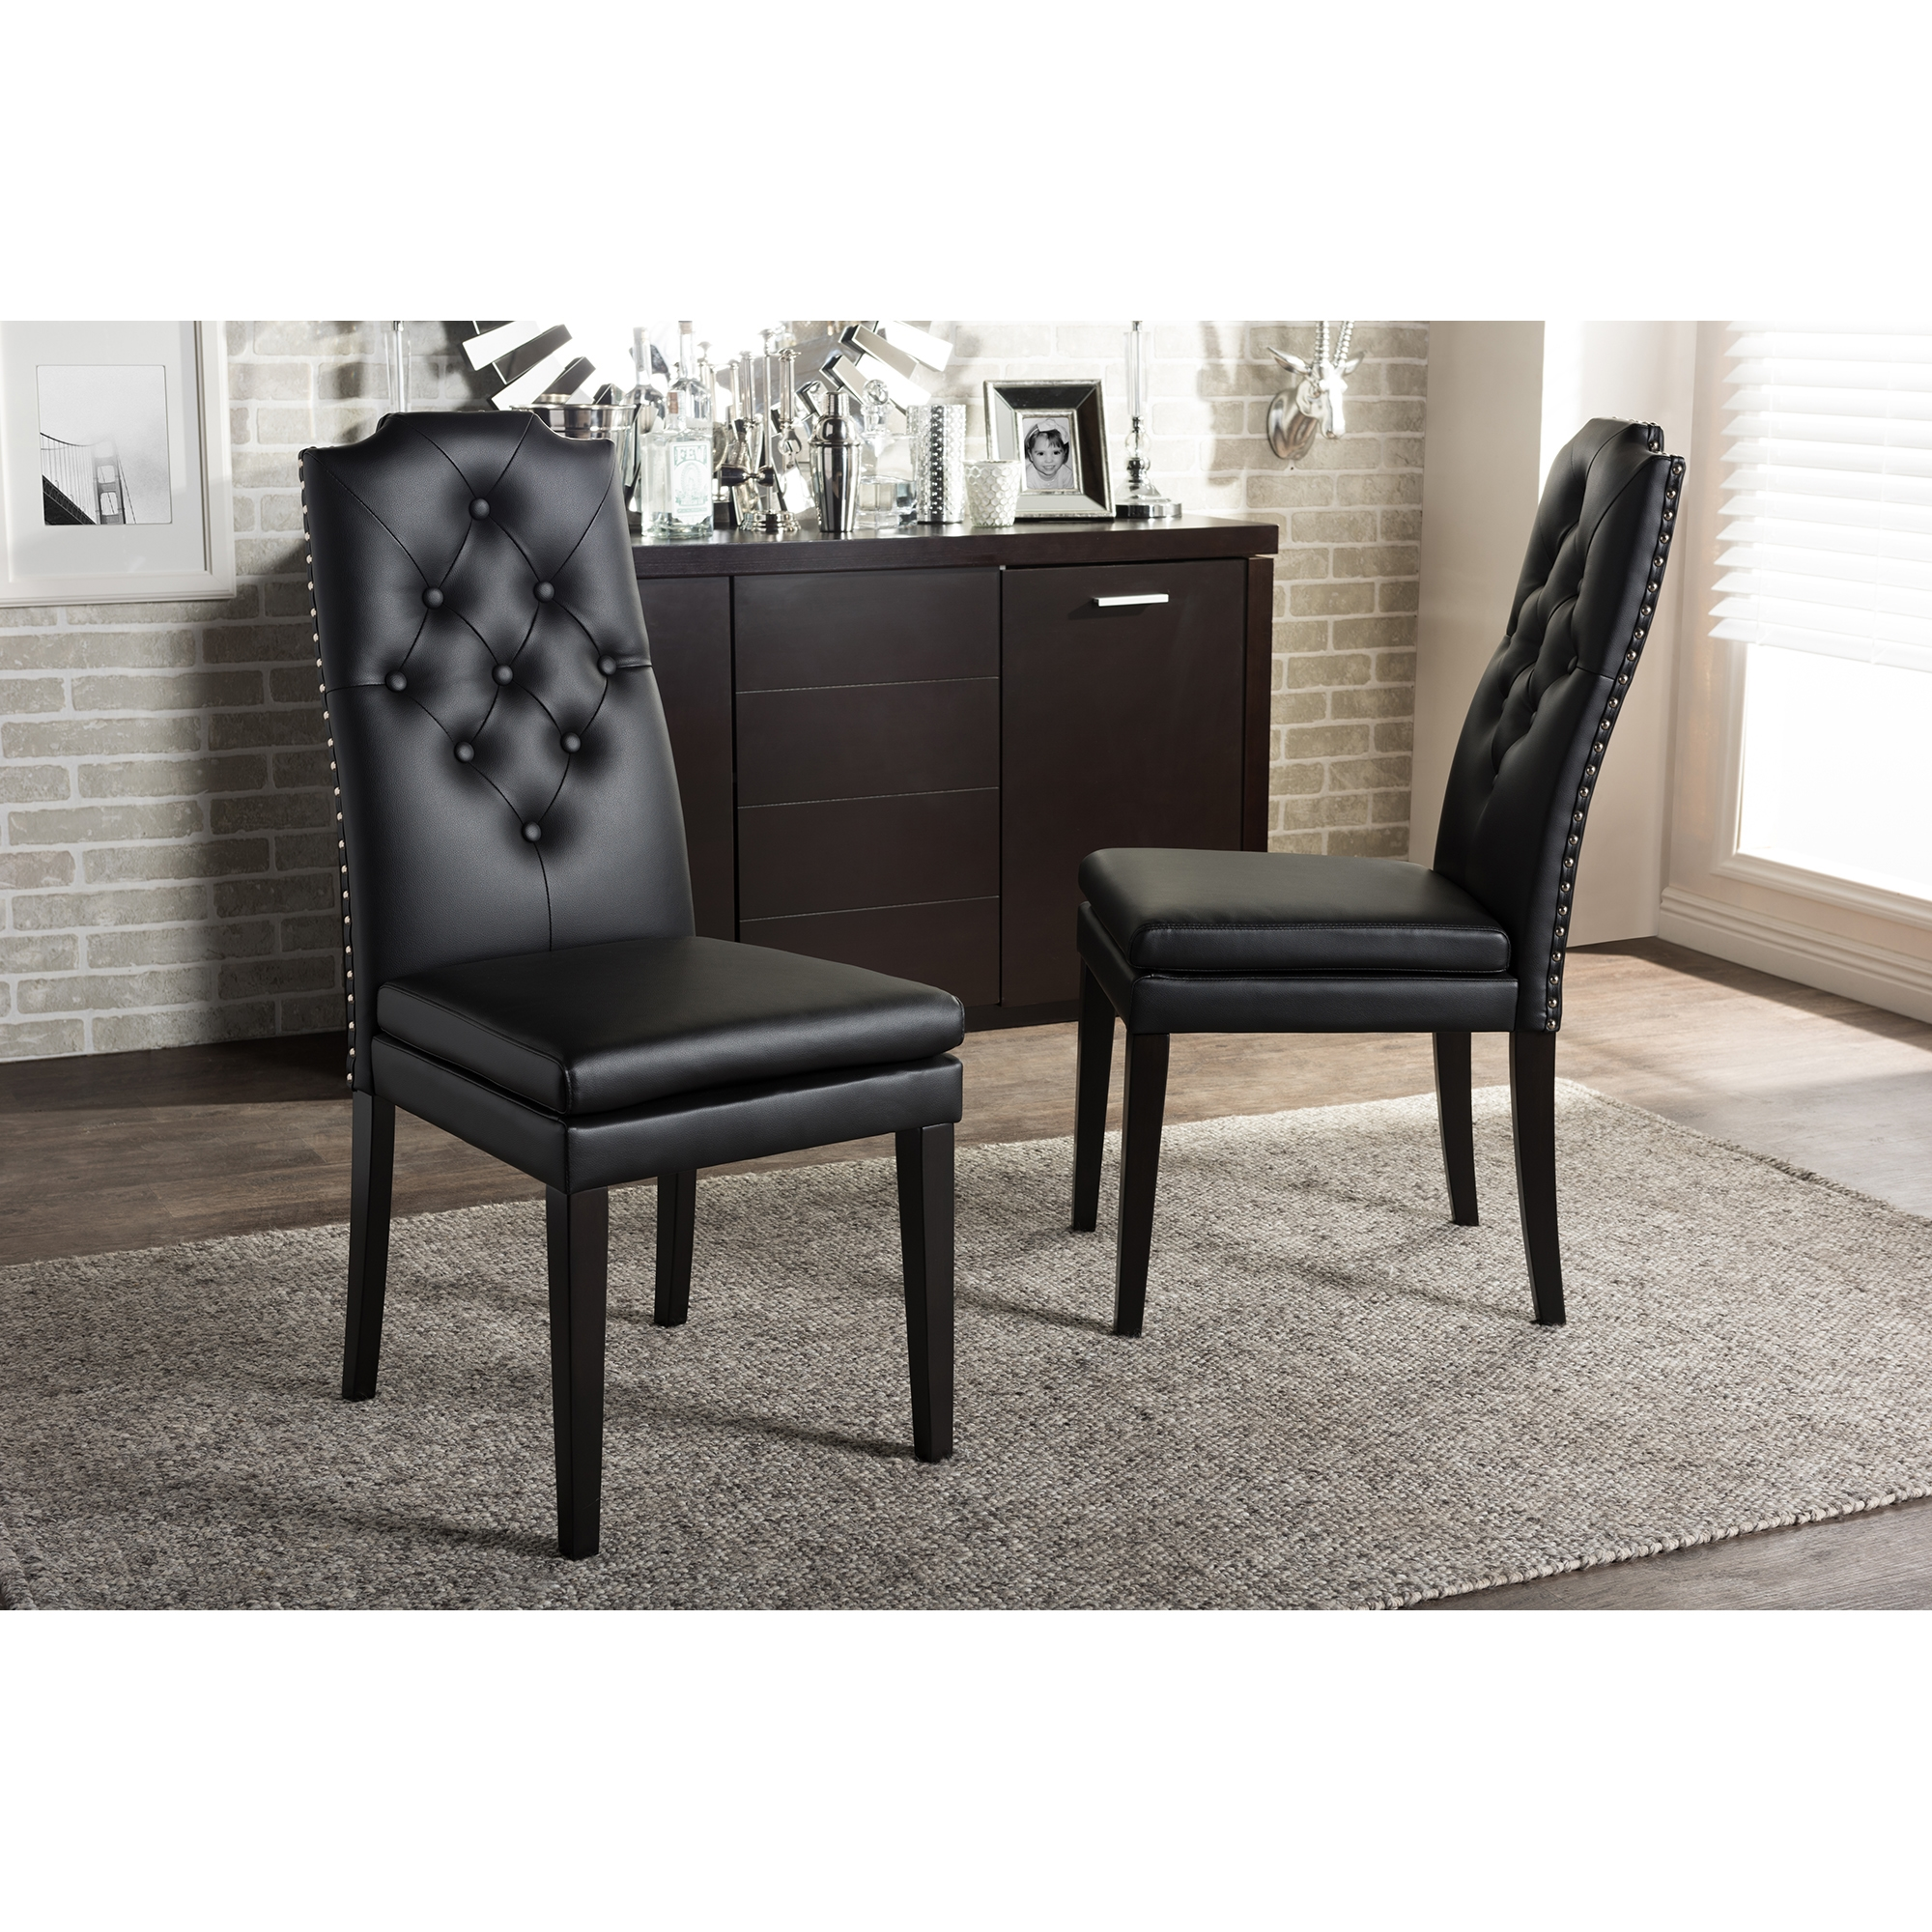 Baxton Studio Dylin Modern And Contemporary Black Faux Leather Button Tufted  Nail Heads Trim Dining Chair